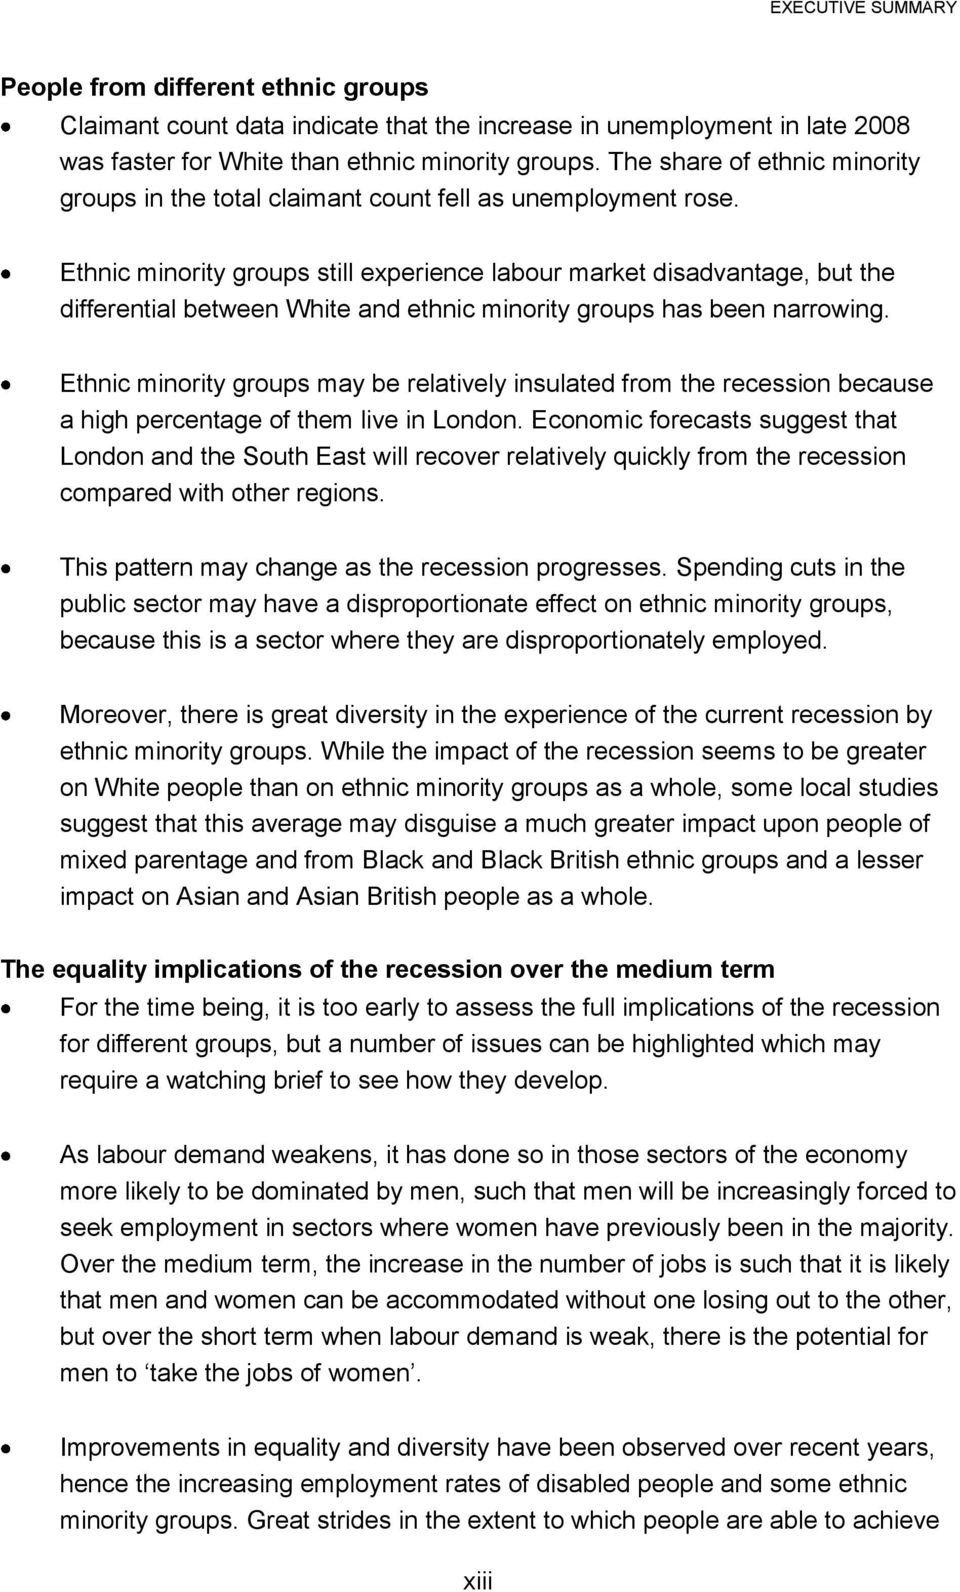 Ethnic minority groups still experience labour market disadvantage, but the differential between White and ethnic minority groups has been narrowing.